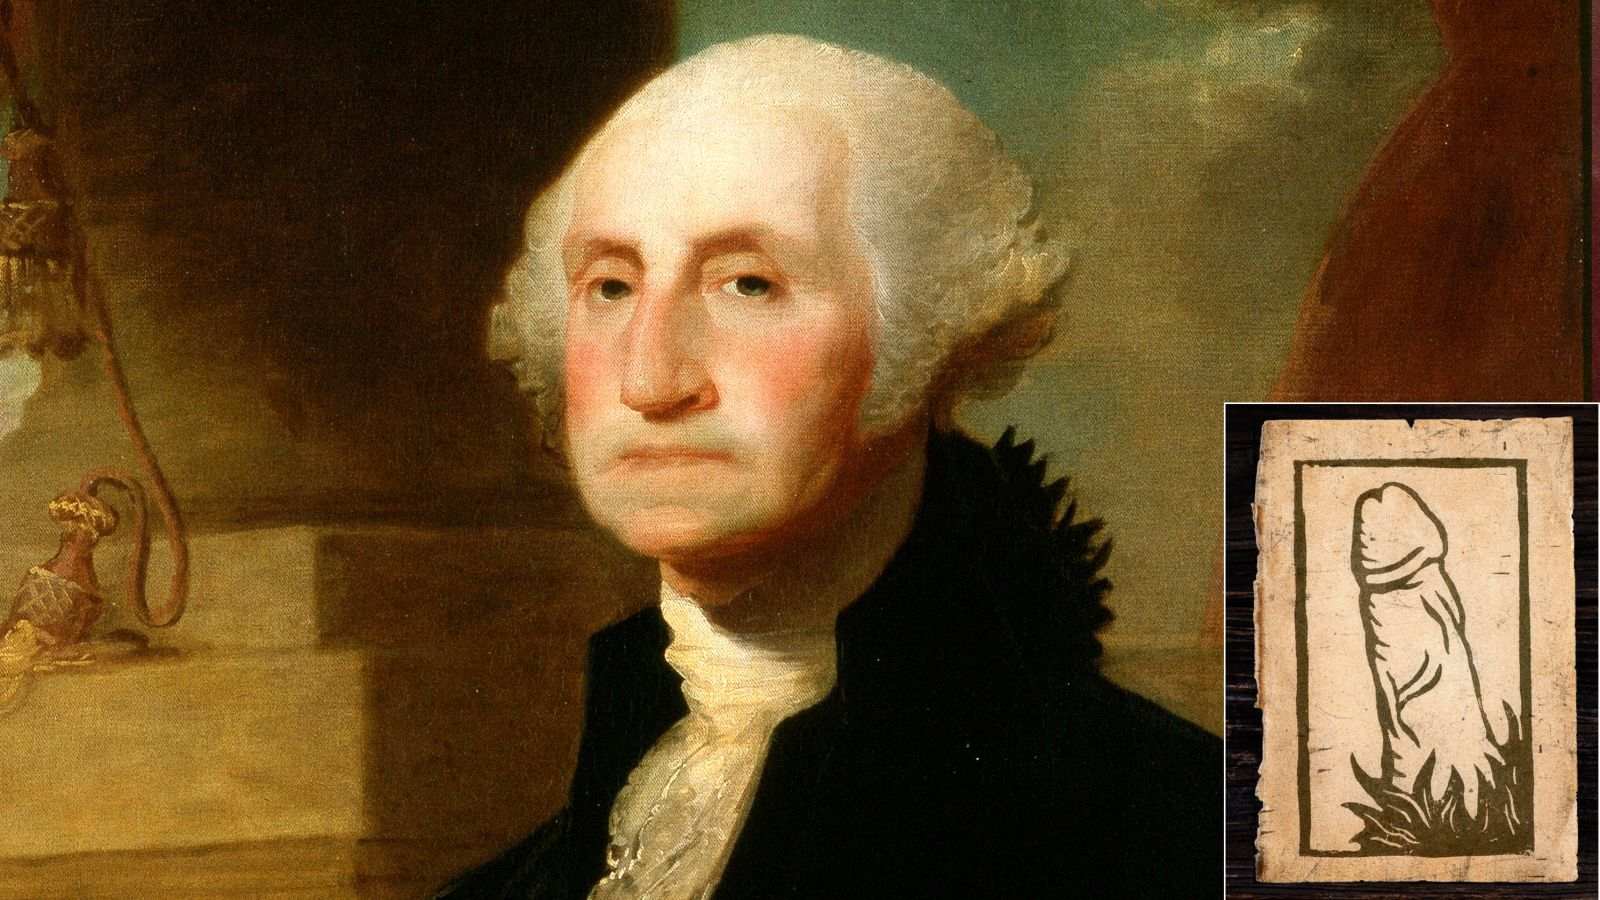 New Evidence Suggests President George Washington Sent Woodcut Of Penis To Secretary https://t.co/jiDP7i4OEO https://t.co/Hci1HesMPG